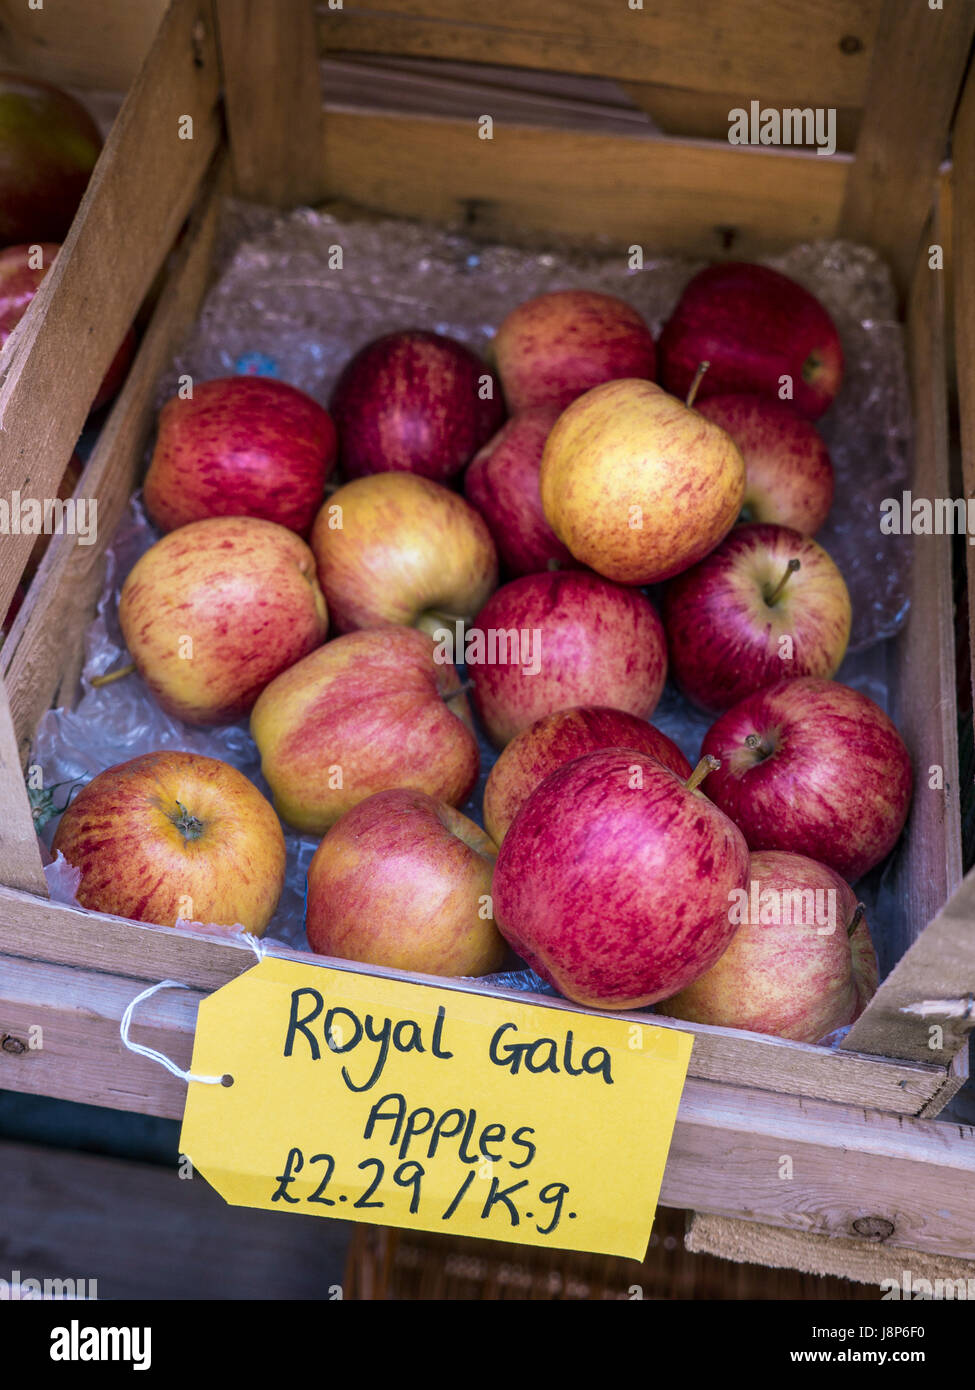 Royal Gala Apples in crate on display for sale at £2.29 per Kilo at a Dorset Farm Shop UK - Stock Image